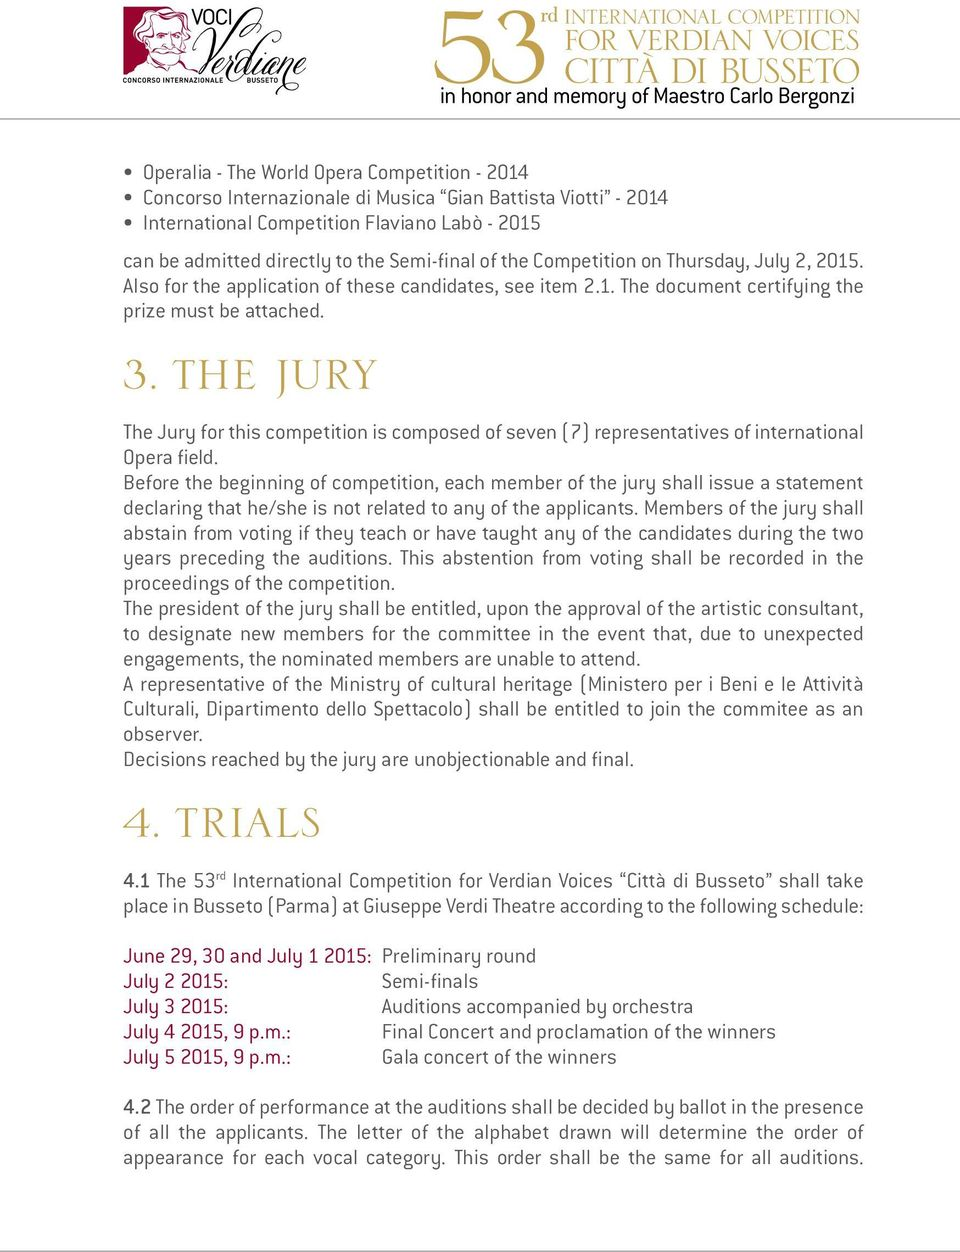 3. THE JURY The Jury for this competition is composed of seven (7) representatives of international Opera field.